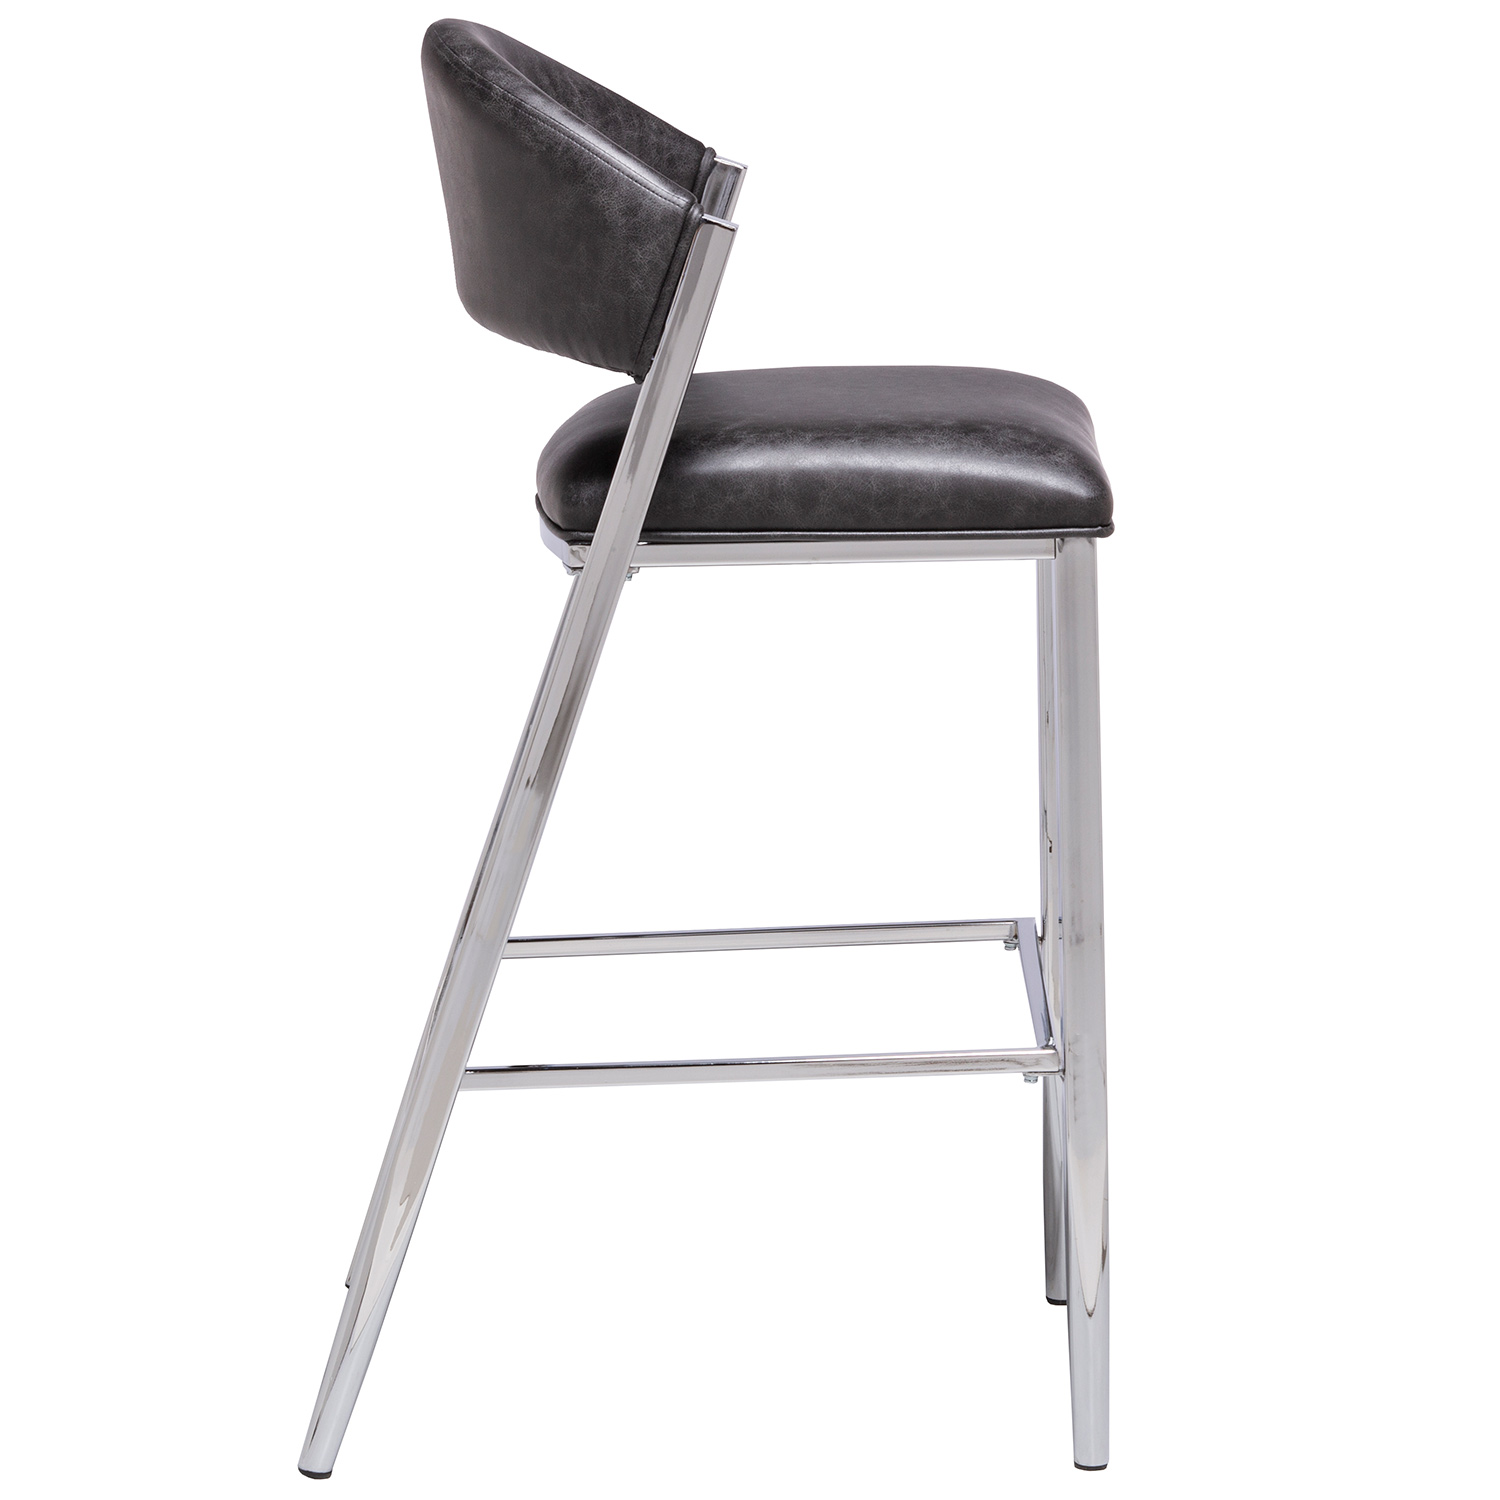 Hillsdale Molina Bar Height Stool - Chrome